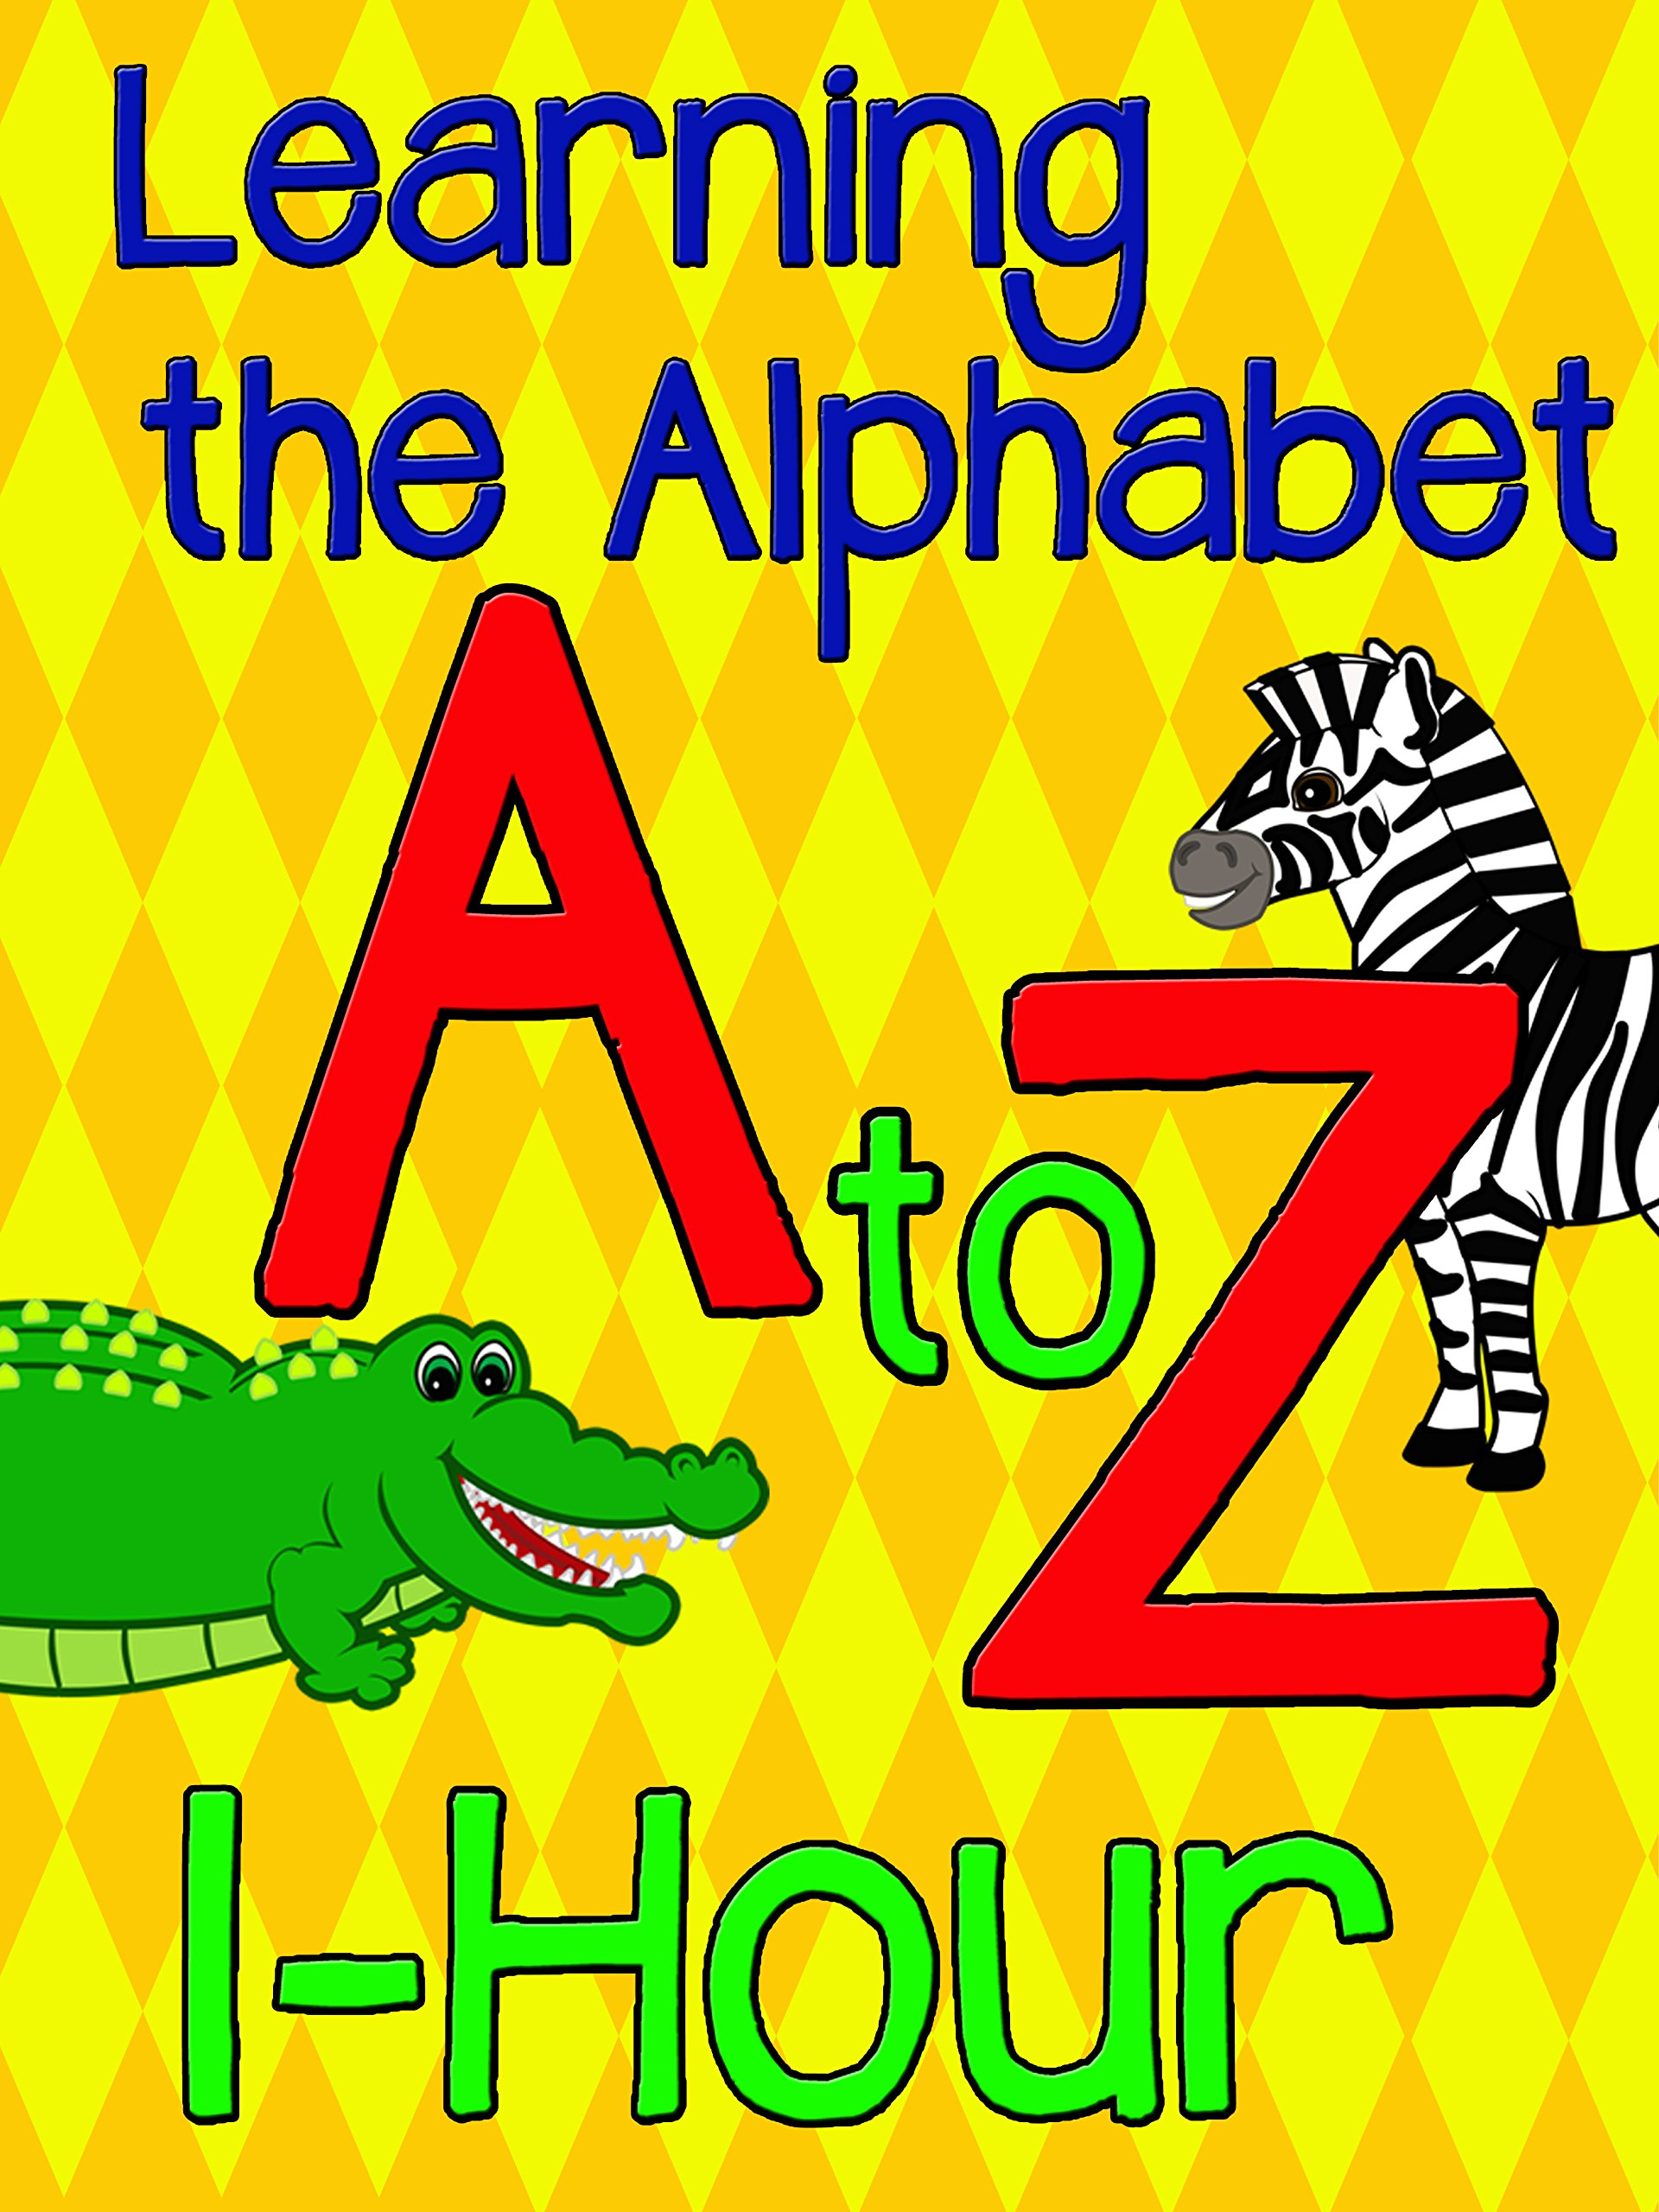 Learning the Alphabet A to Z - 1 Hour on Amazon Prime Instant Video UK